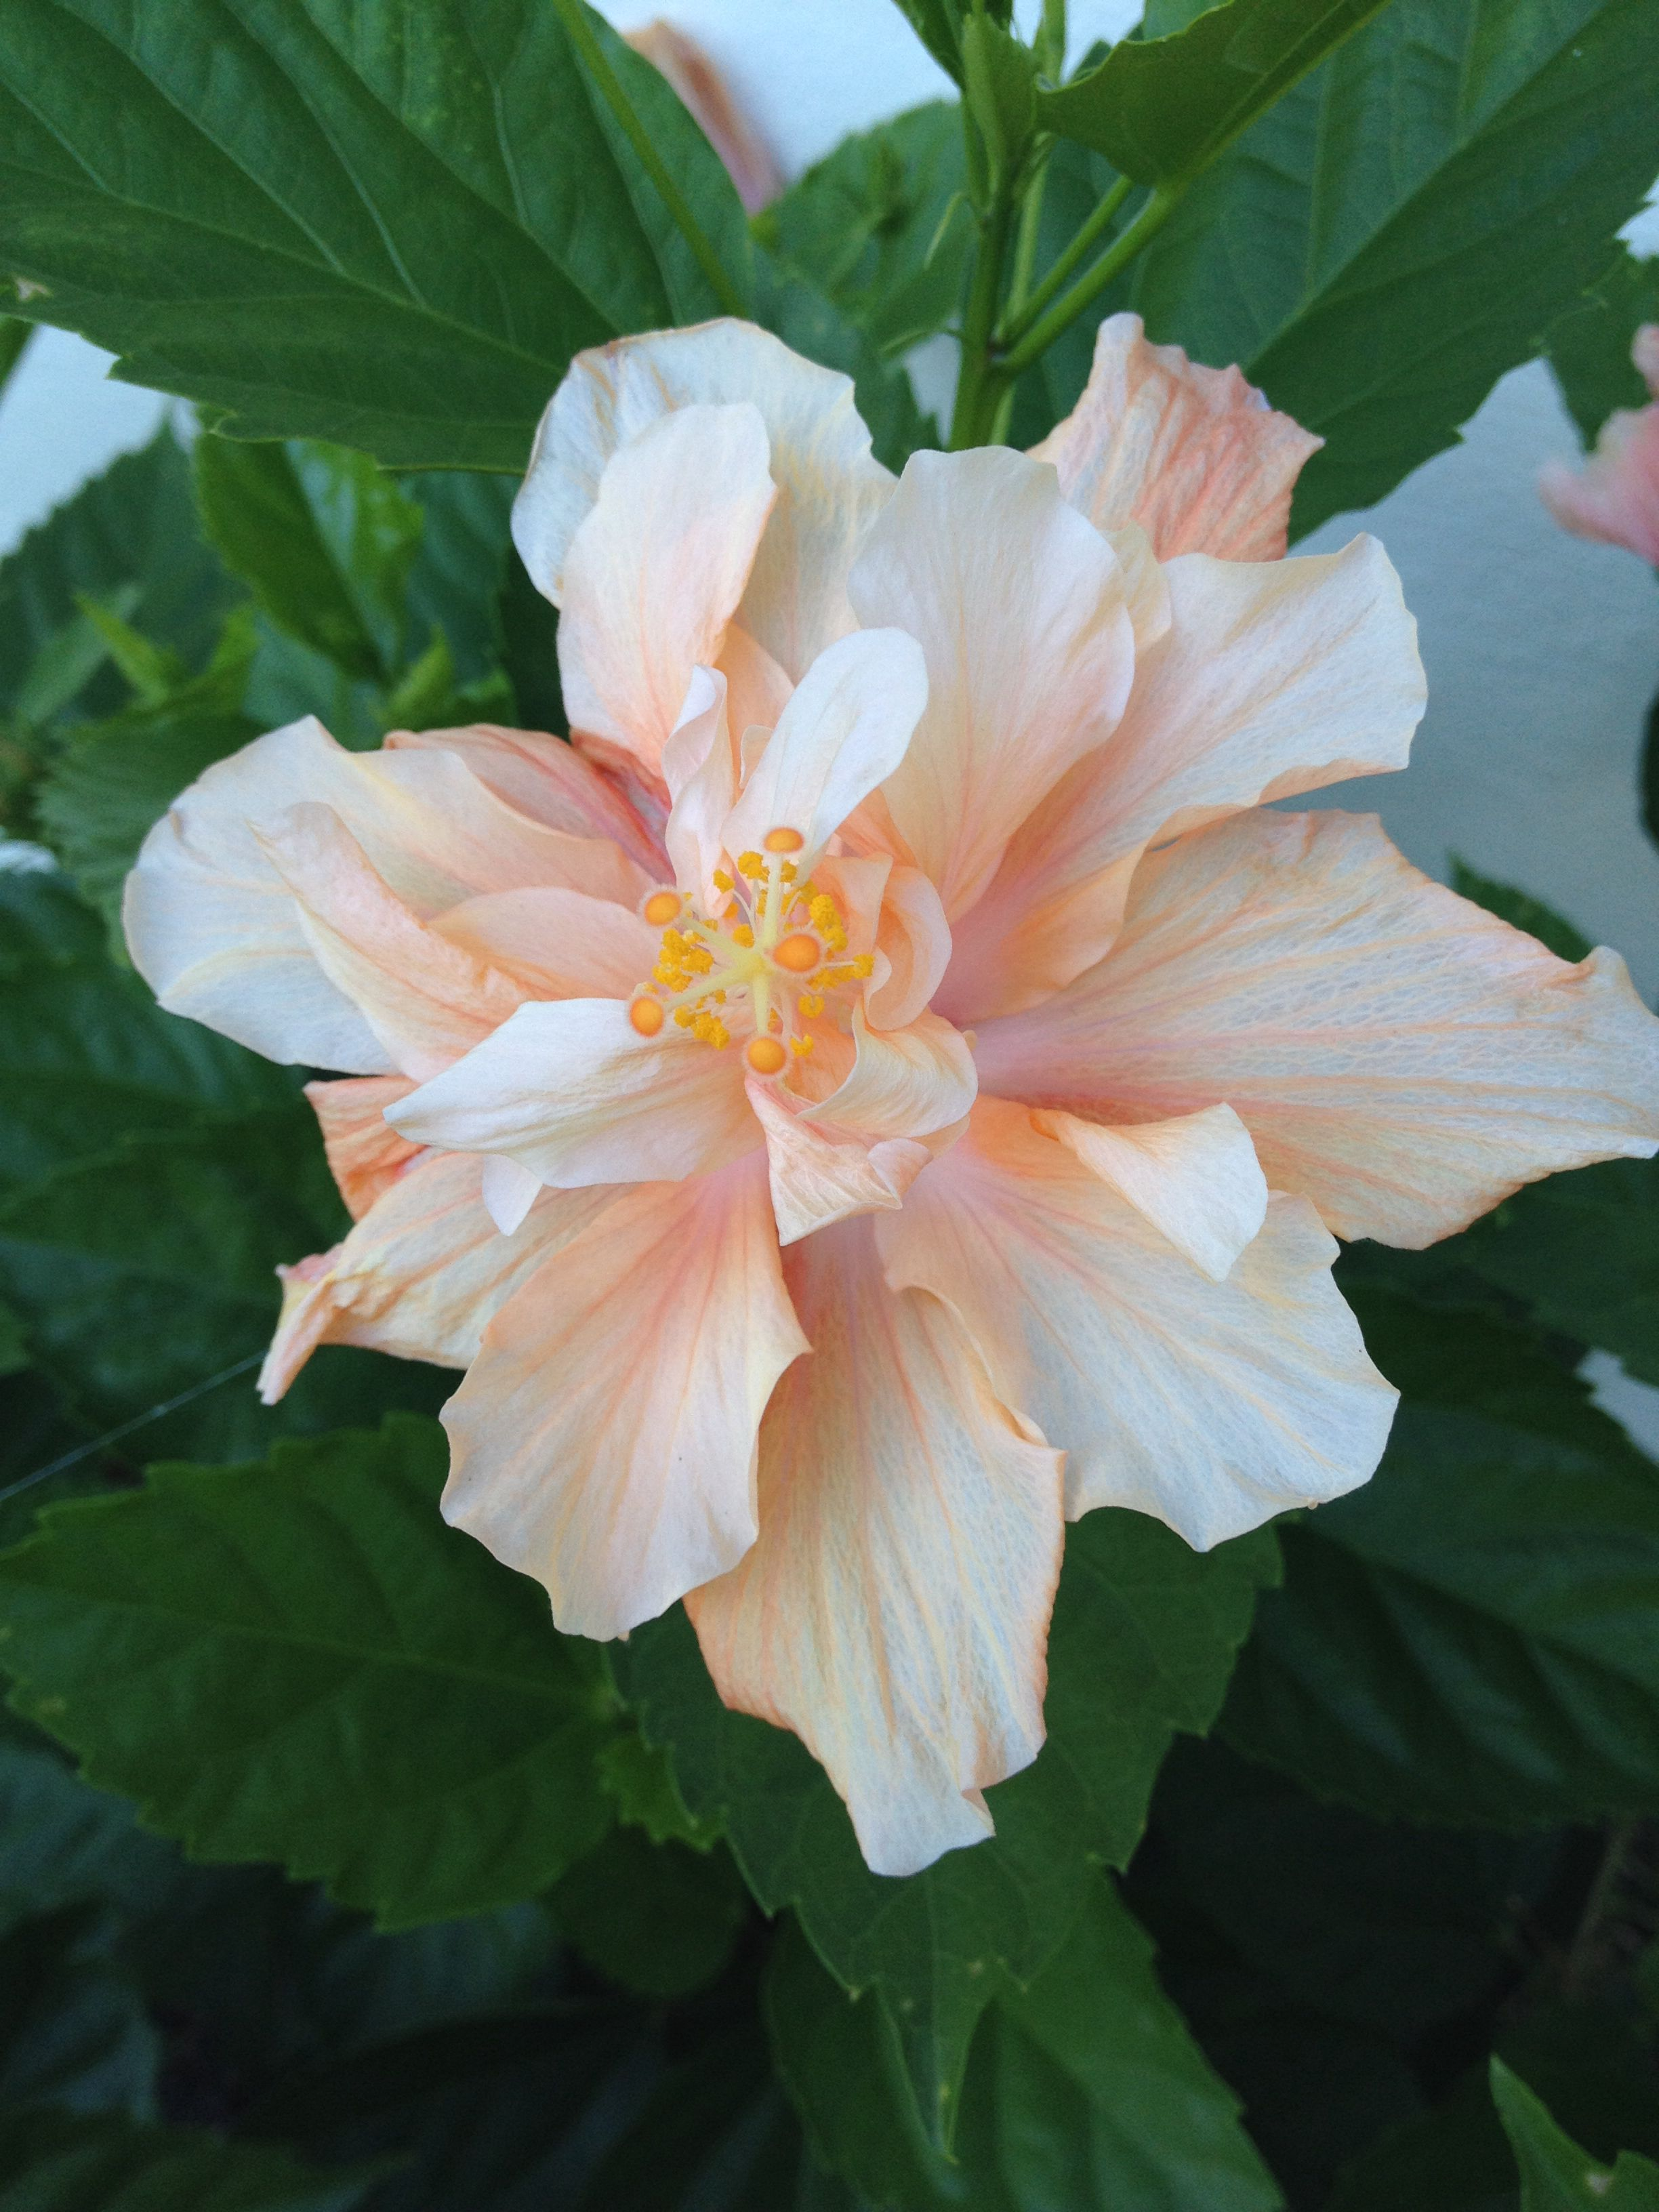 Double bloom hibiscus from my tree flowers my bliss double bloom hibiscus from my tree izmirmasajfo